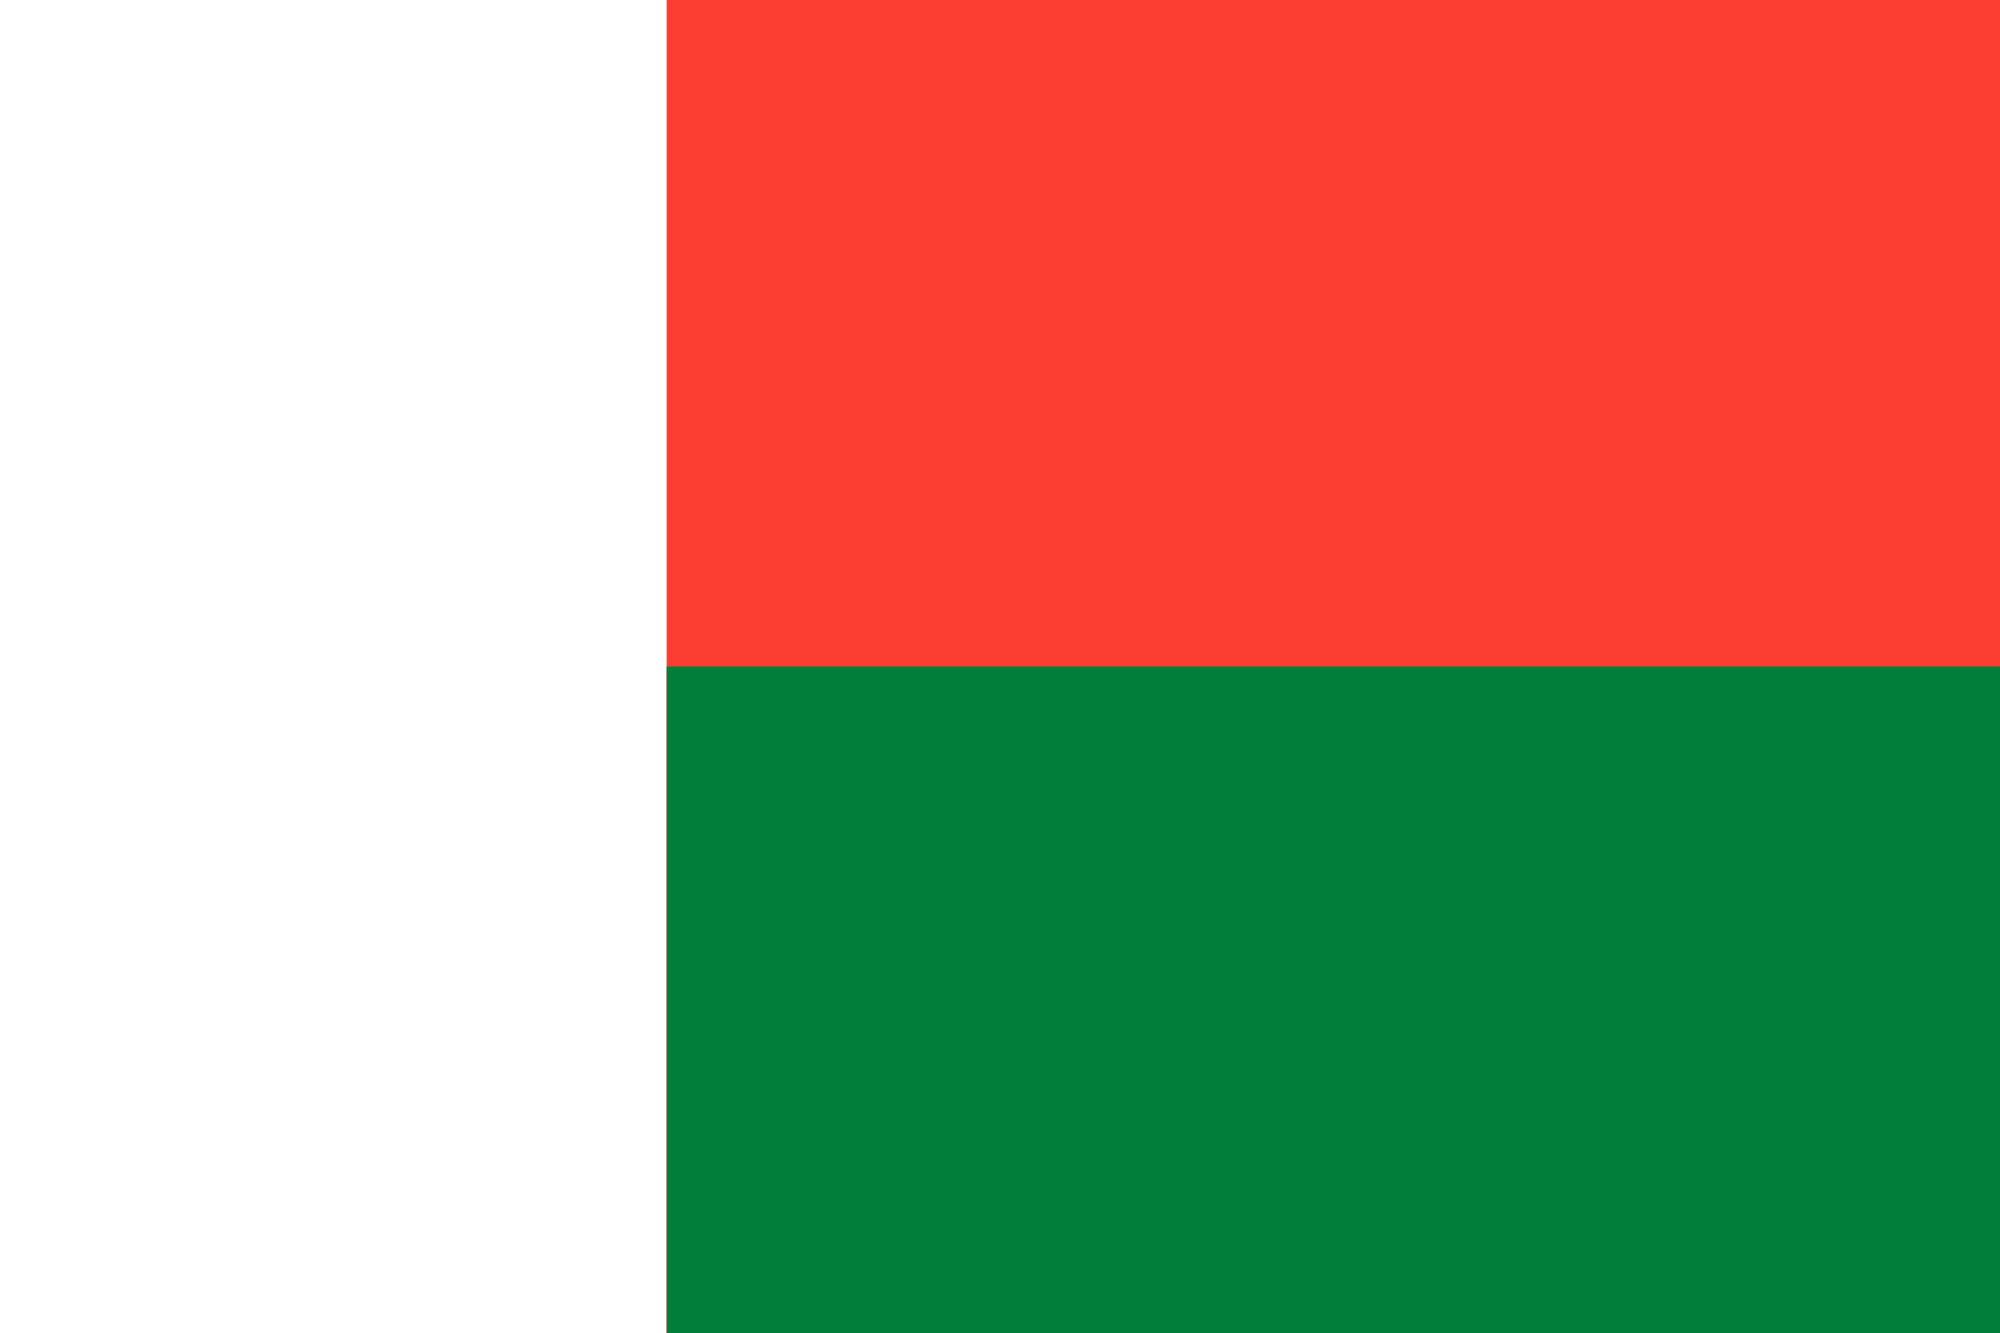 madagascar Official Friend Application Form on for leave, u.s. passport,